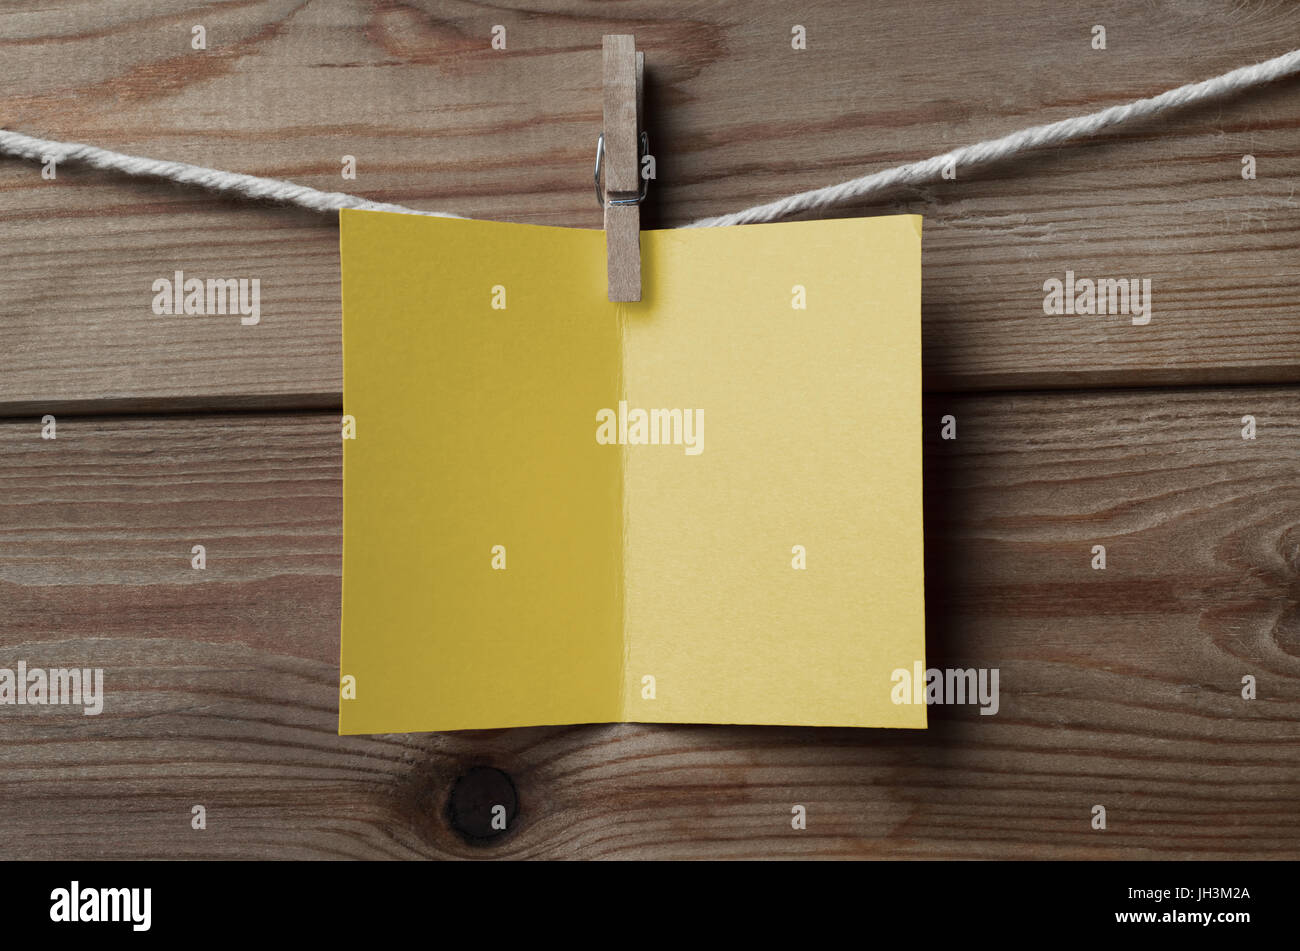 An opened, blank yellow greetings card,  pegged on to string against wood plank background - Stock Image